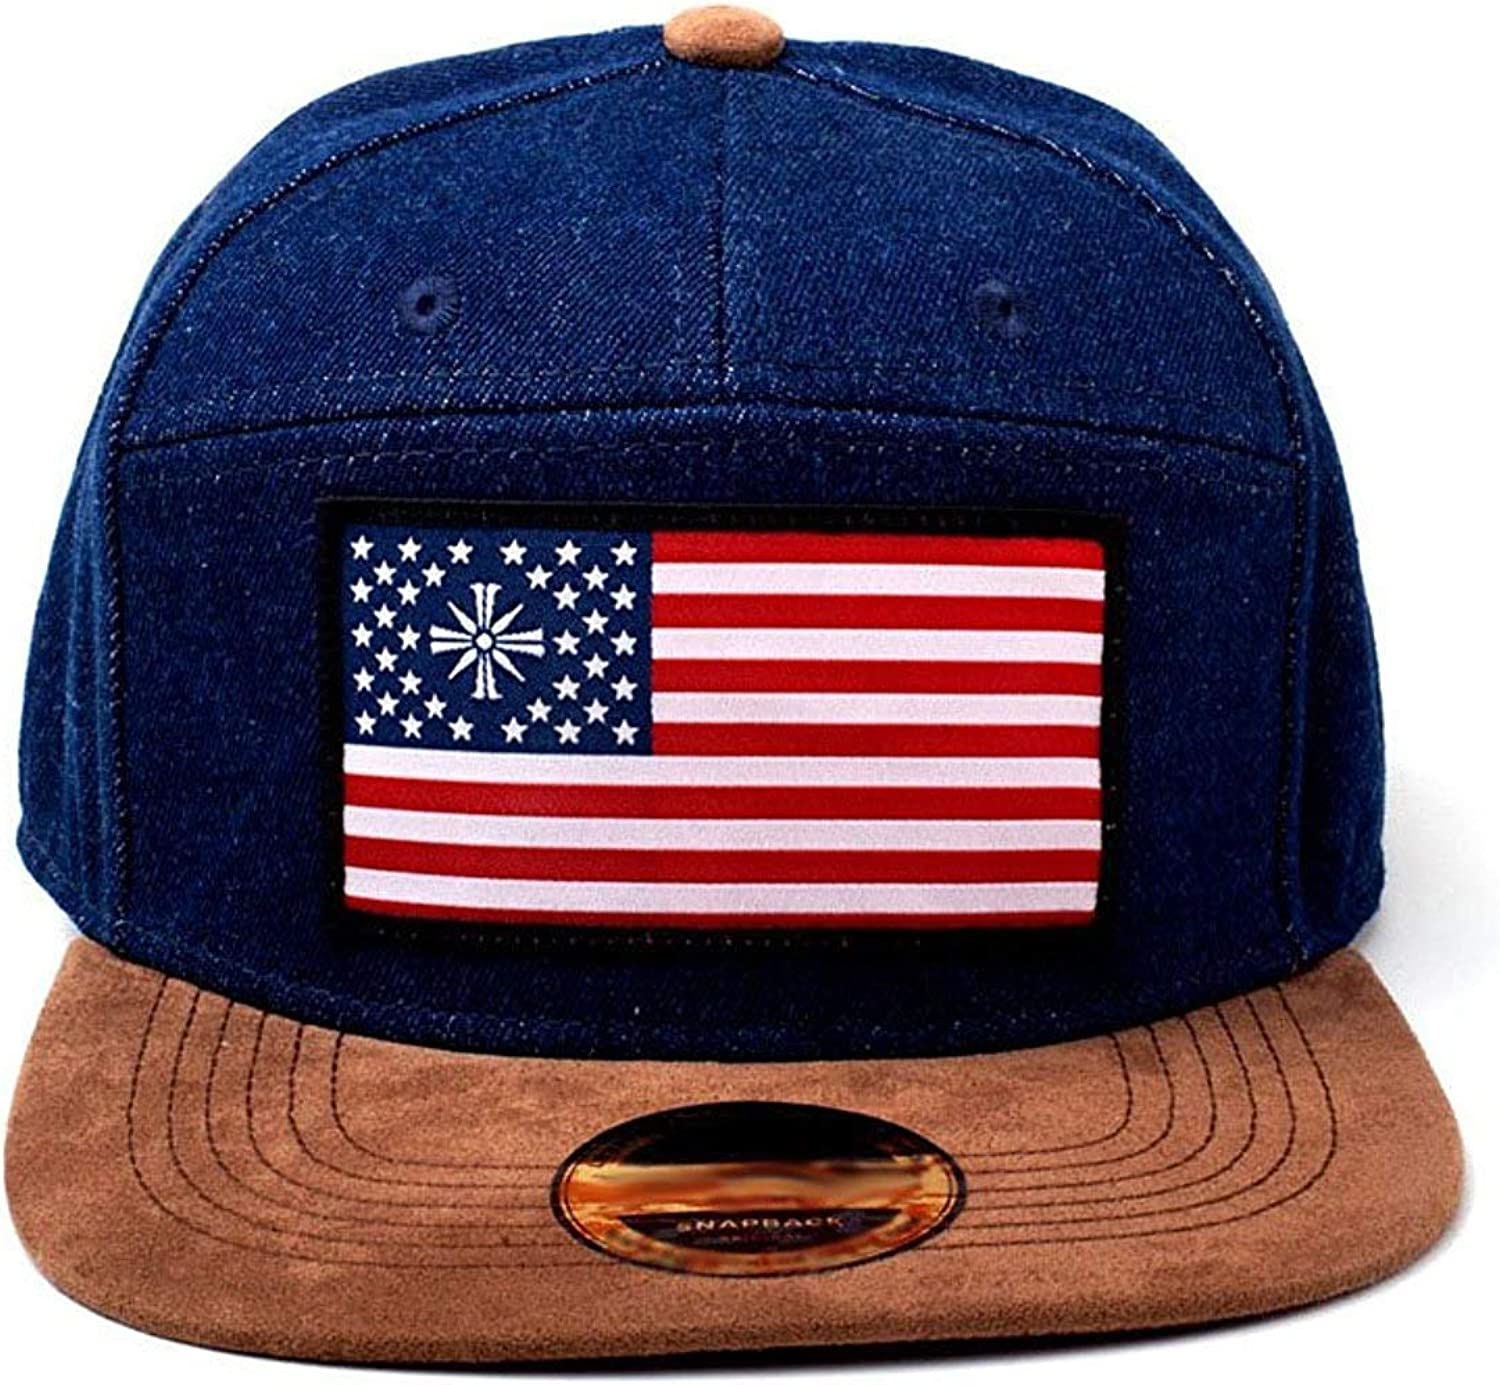 Bioworld Far Cry 5 American Flag Denim Snapback Baseball Cap Blue Blue Blue One Size Amazon Co Uk Clothing